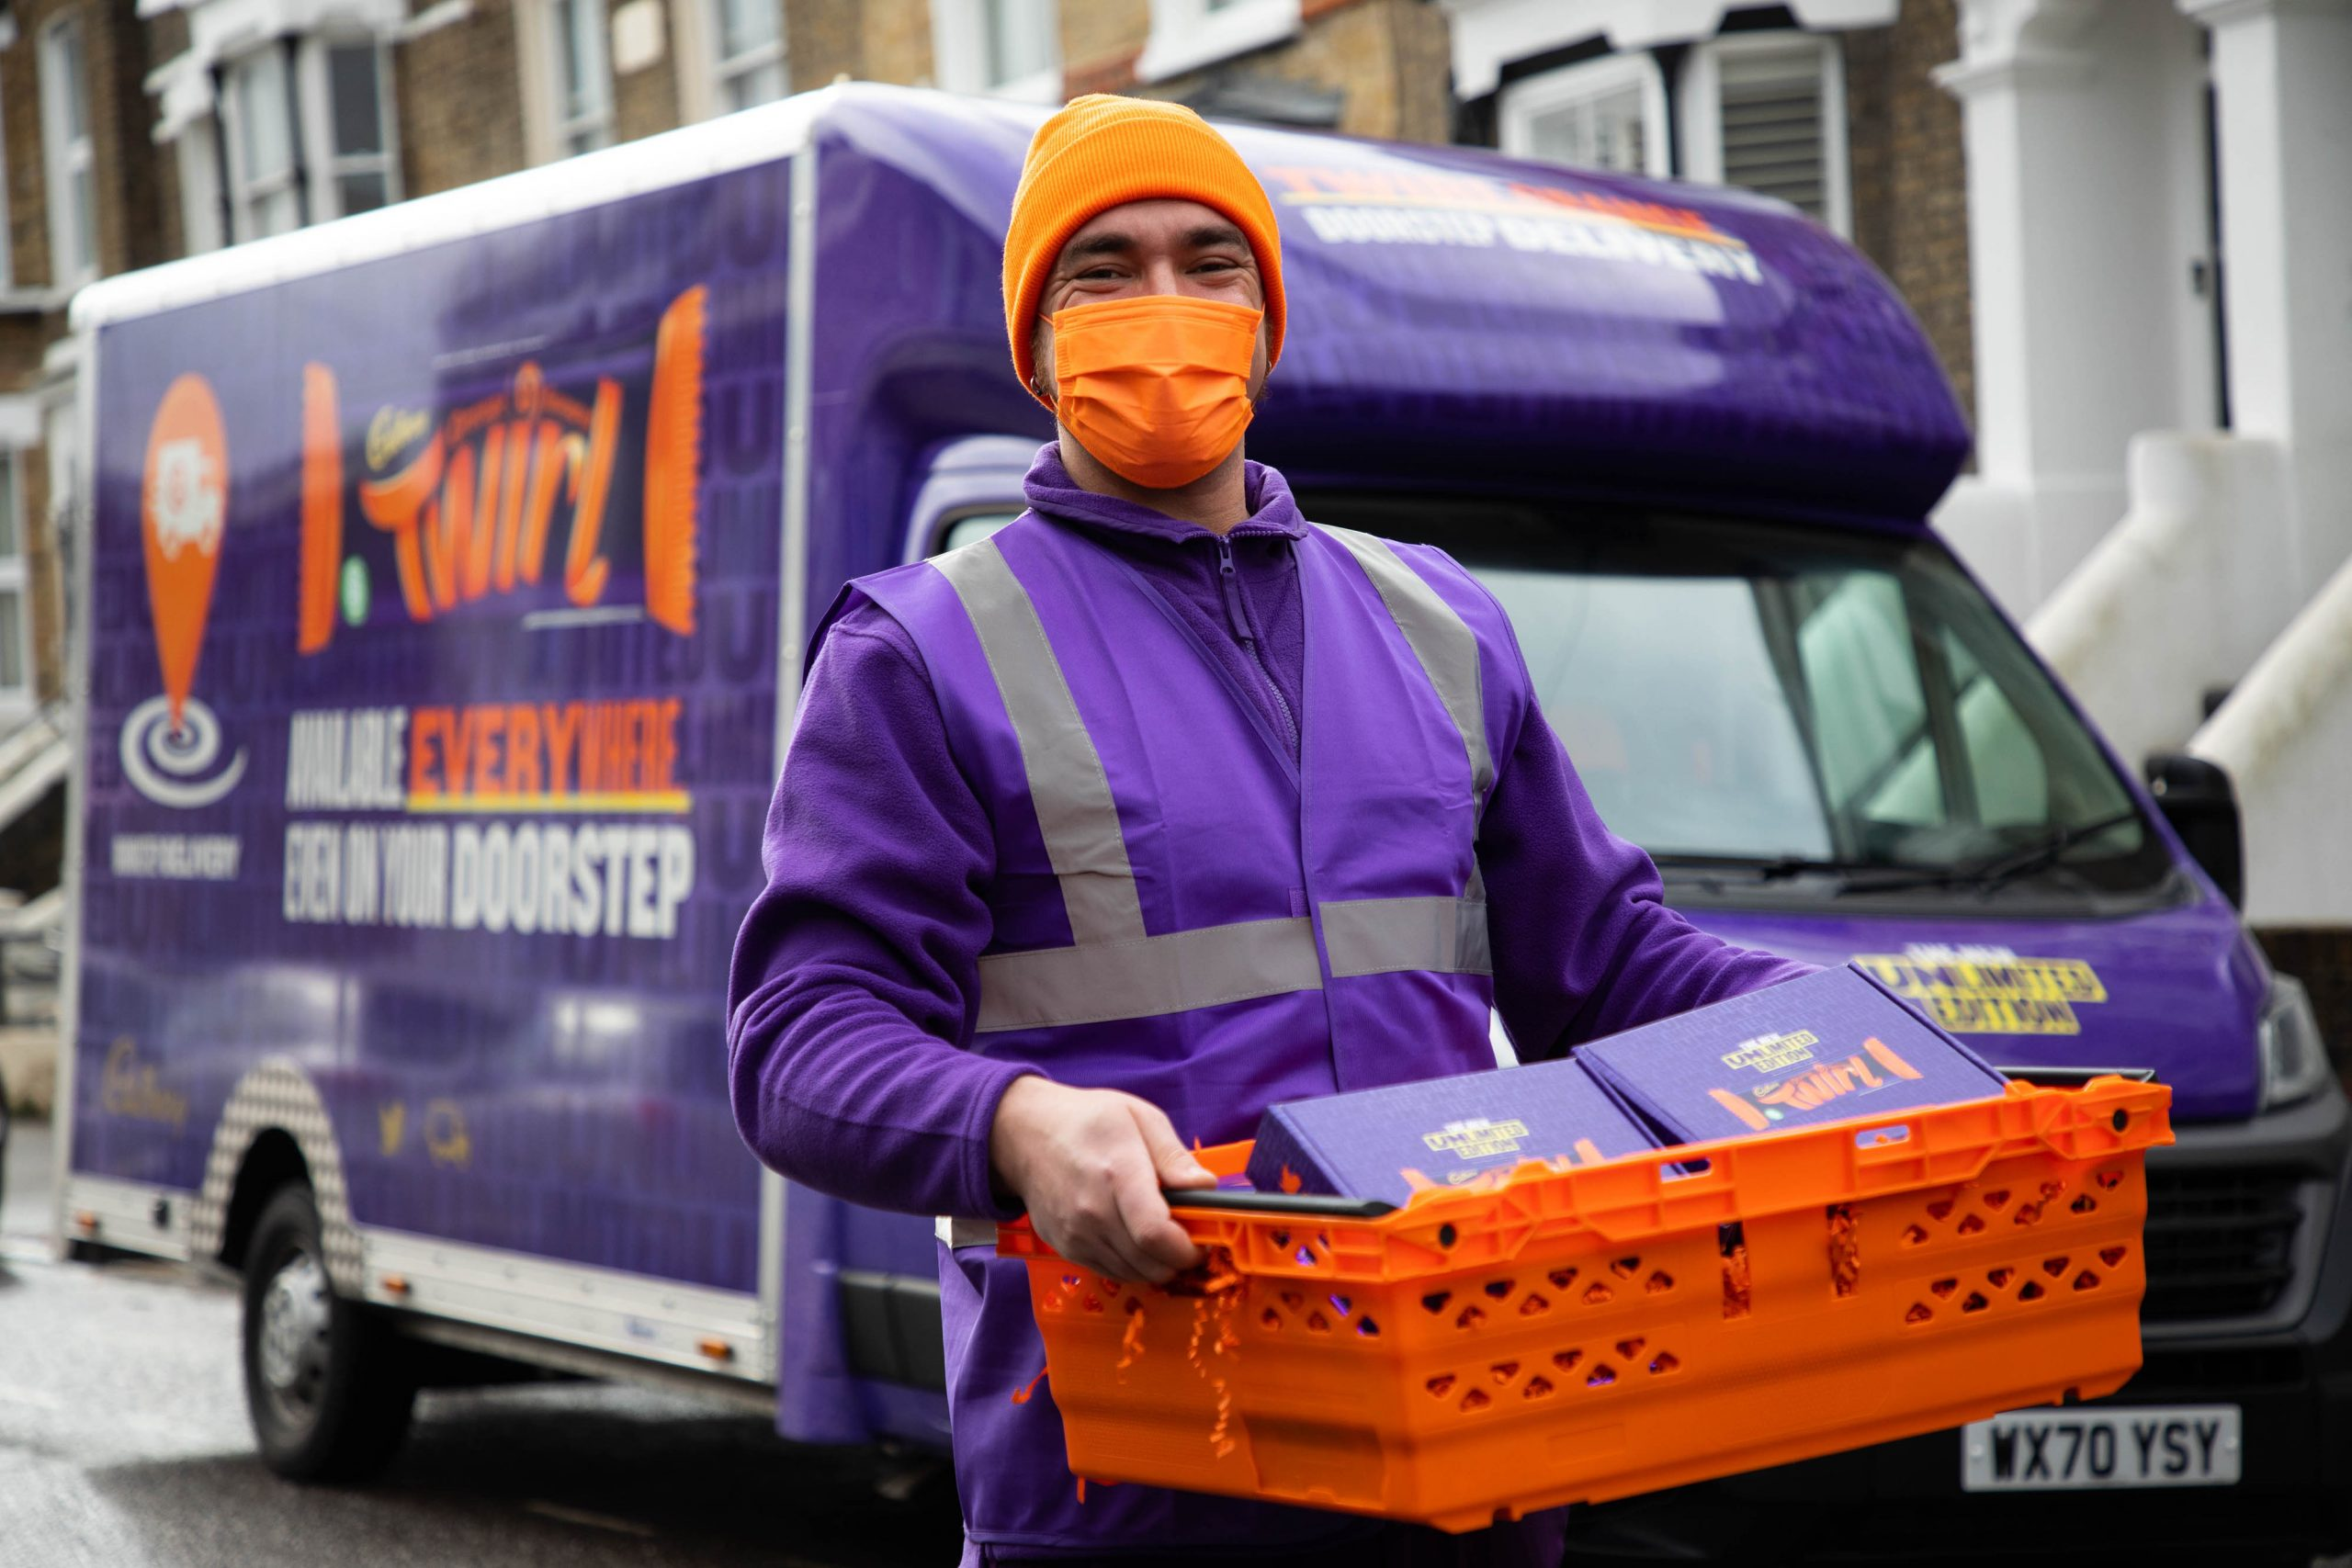 Cadbury Twirl Orange Unlimited Edition deliveries, London. PA Photo. Picture date: Monday February 15, 2021: David Parry/PA Wire